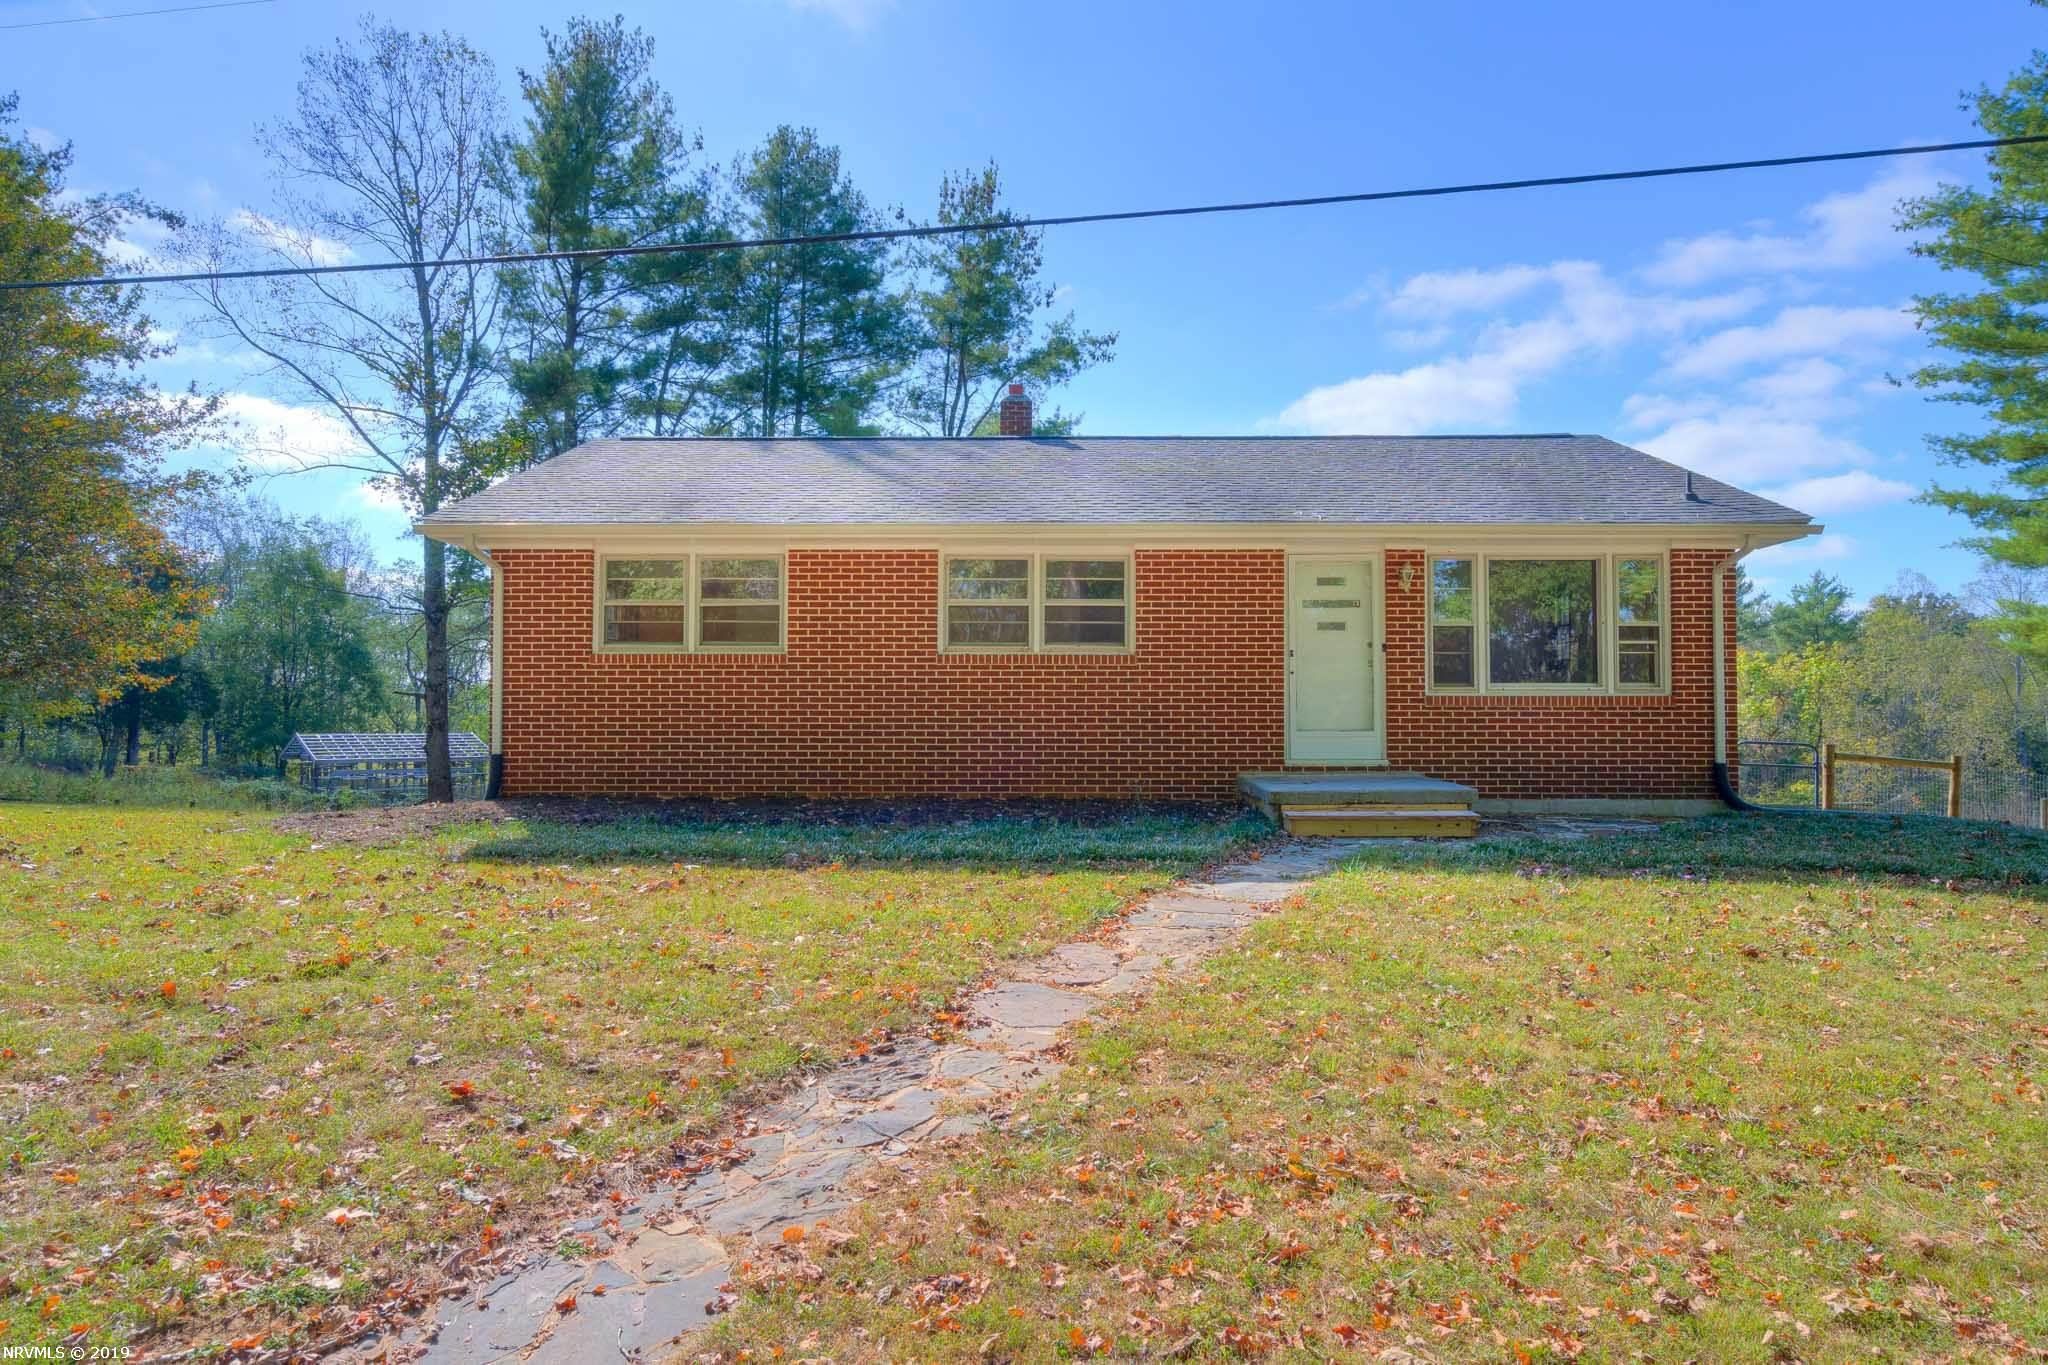 Charming 3BR/1BA home close to Town of Blacksburg, the New River and Jefferson National Forest.  Interior features include refinished hardwood floors in living room, hallway and all 3 bedrooms, eat-in kitchen equipped with all appliances (range/oven, dishwasher, refrigerator), full unfinished walk-out basement with laundry room, workshop space and plumbed for an additional bathroom.  This cozy brick cottage rests on a nice 1 acre lot adjacent to nice meadow and offers a spacious deck, outdoor kitchen and ample gardening space.  Affordable opportunity for a Blacksburg home with some space between neighboring homes.